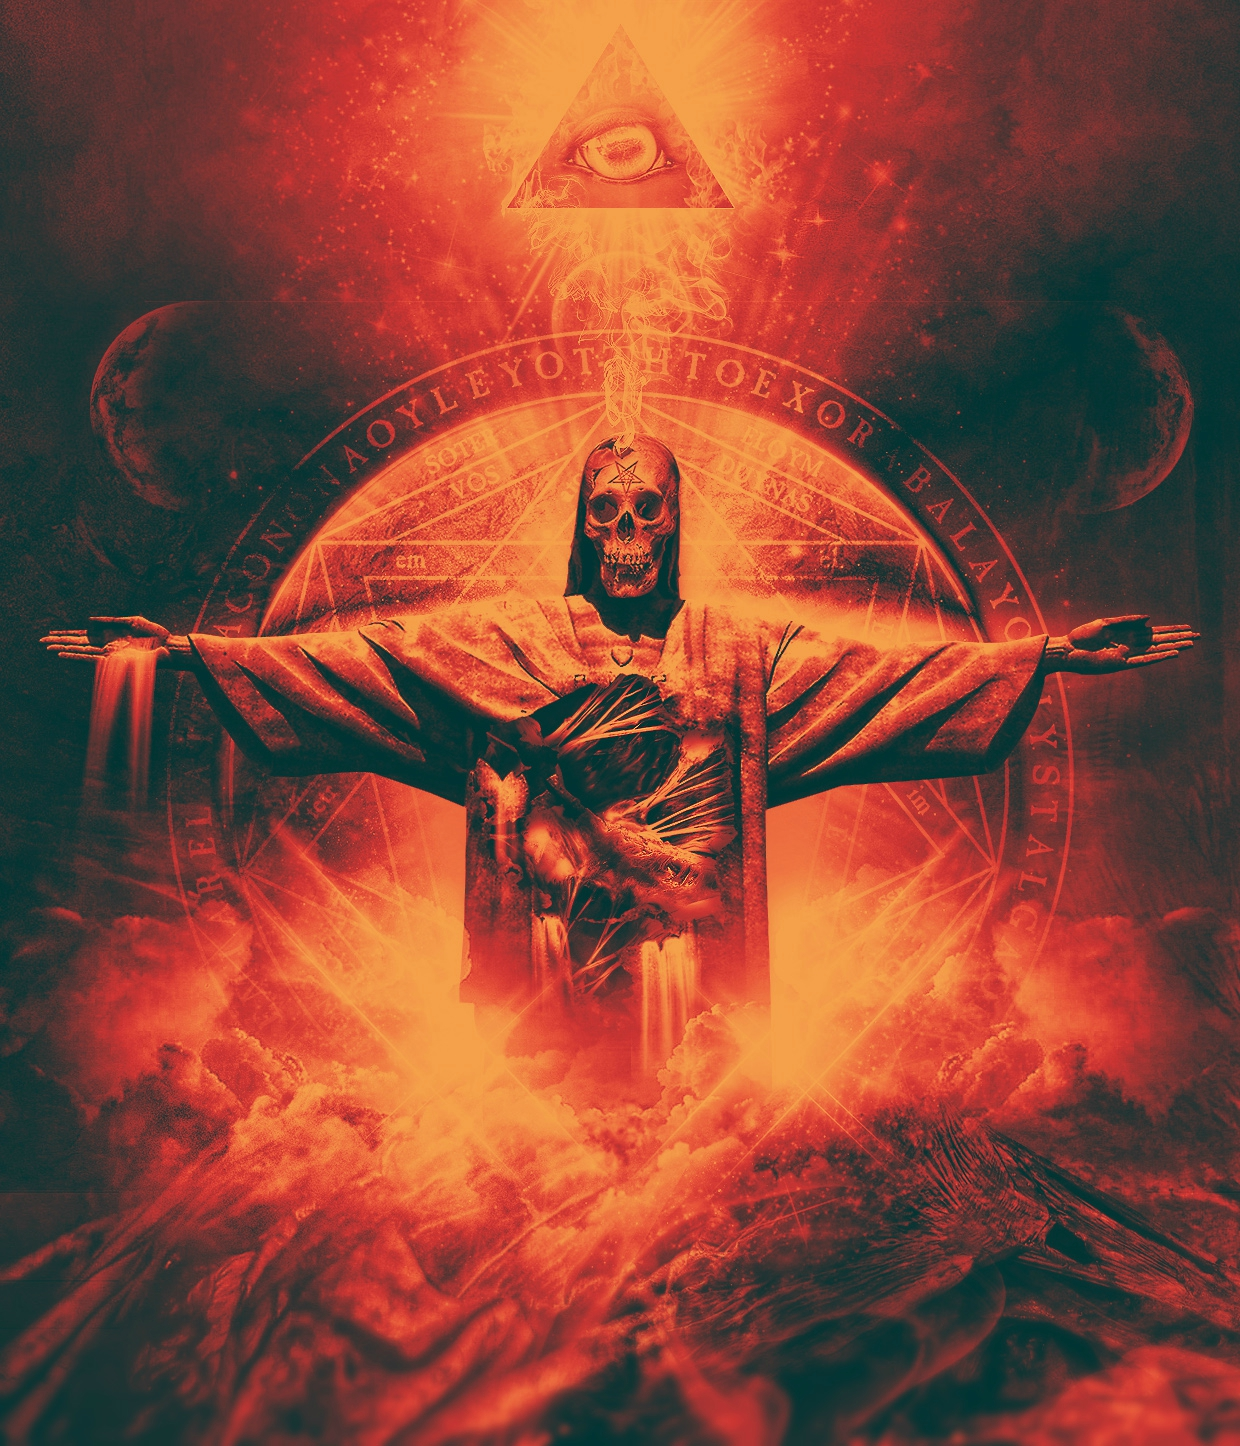 CERN like Portals, wormholes, Nephilim/Gog and Magog, Antichrist's promotion in the 2015 media